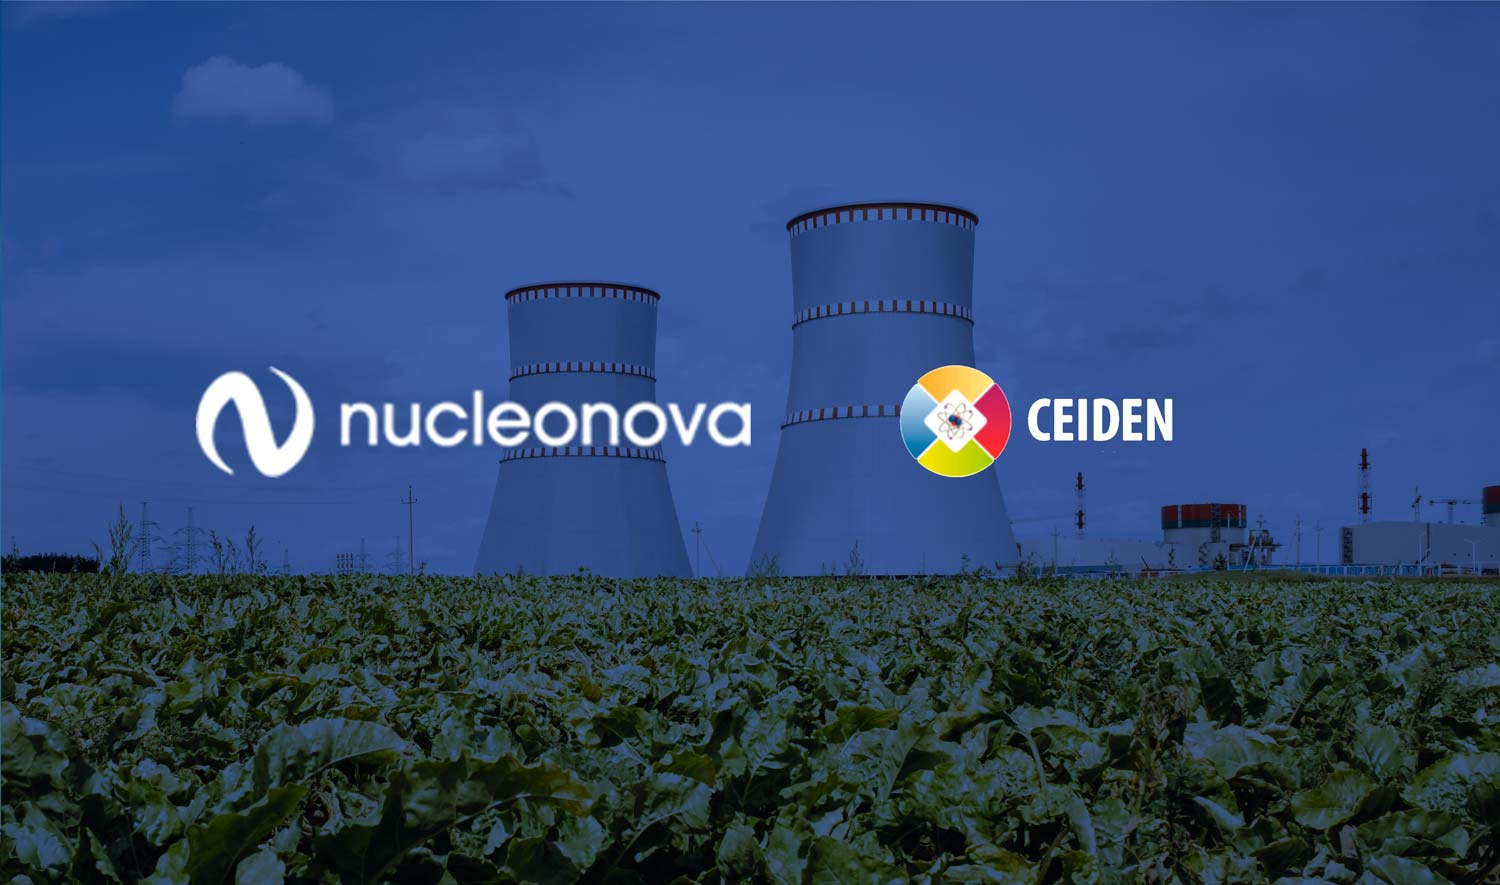 NUCLEONOVA participates in the 37th meeting of the Management Council of the Fission Nuclear Energy Technology Platform (CEIDEN)